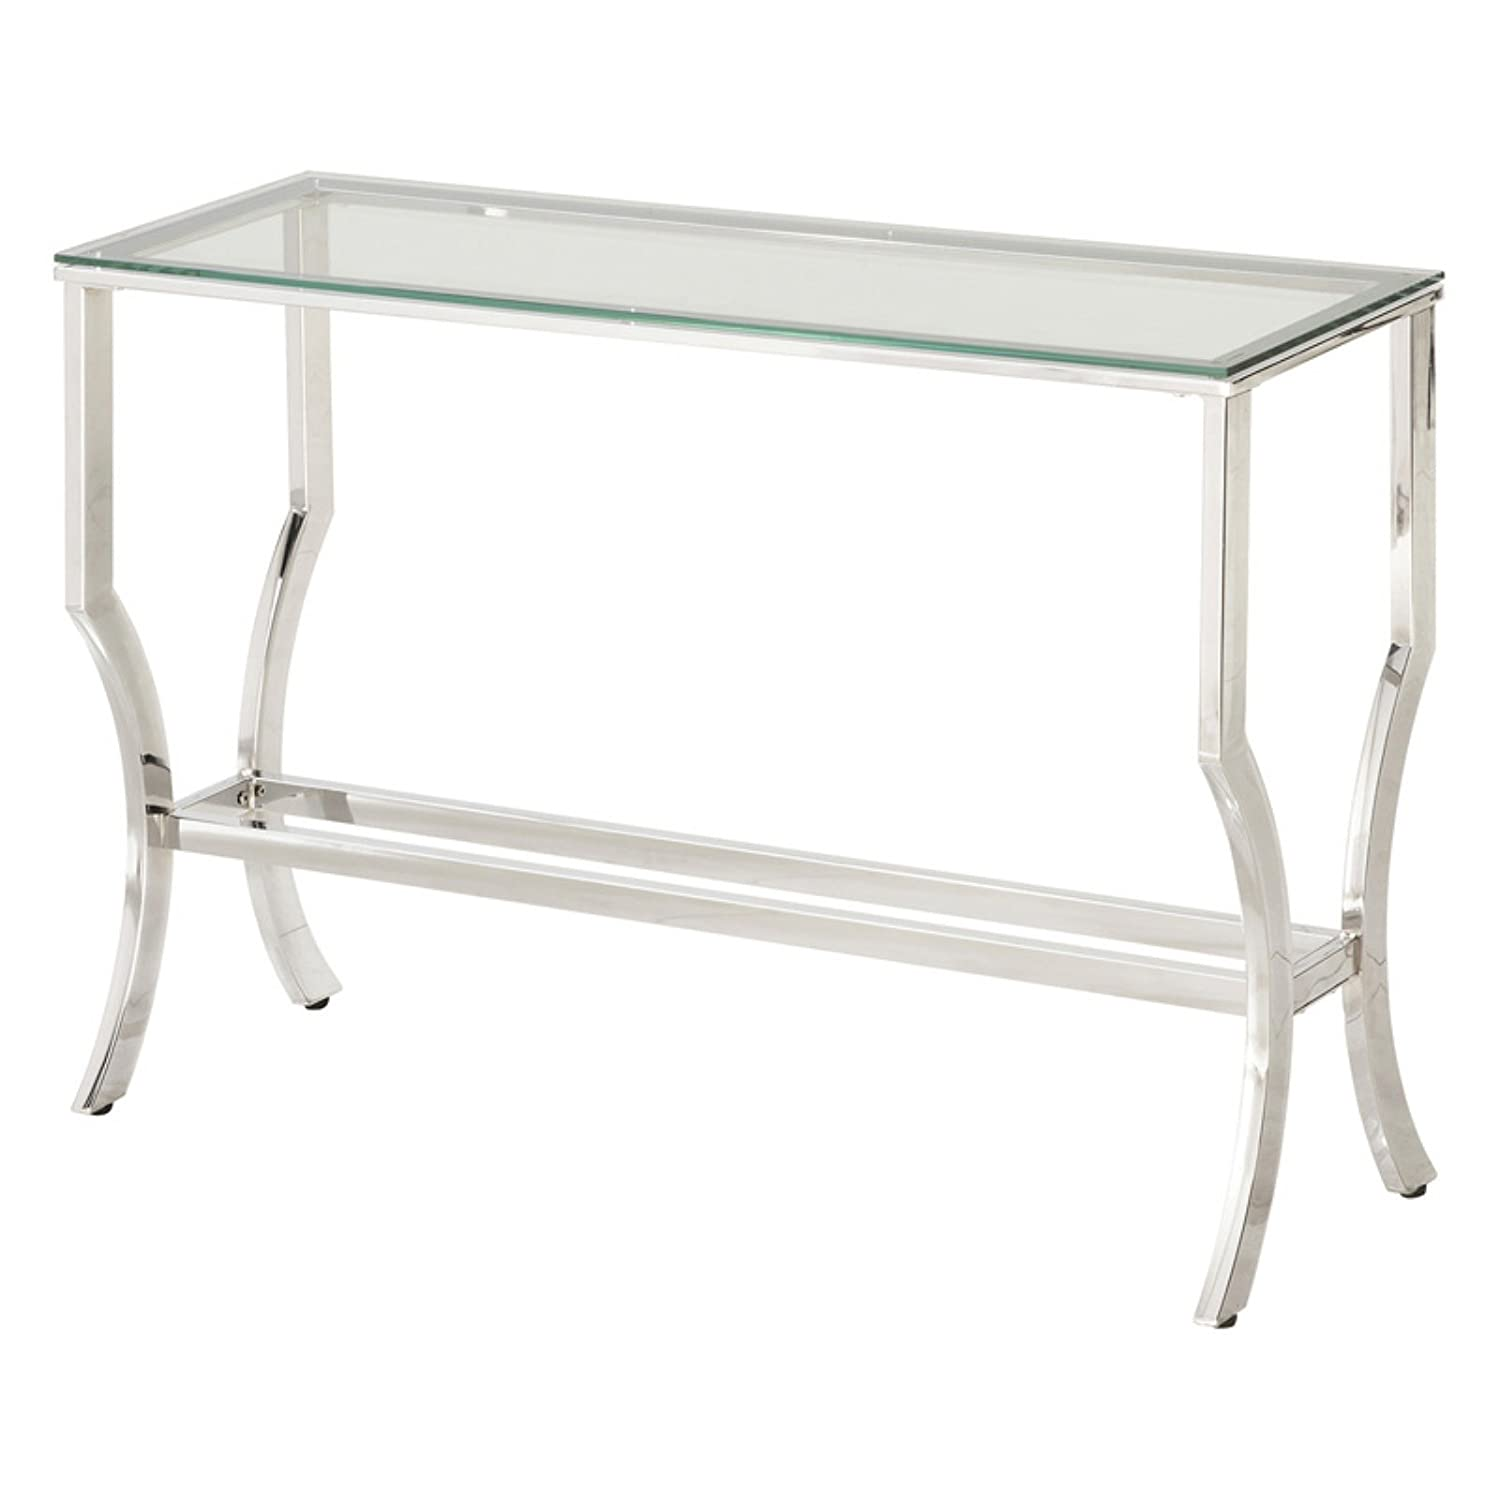 amazoncom coaster glass top console table in chrome kitchen  - amazoncom coaster glass top console table in chrome kitchen  dining